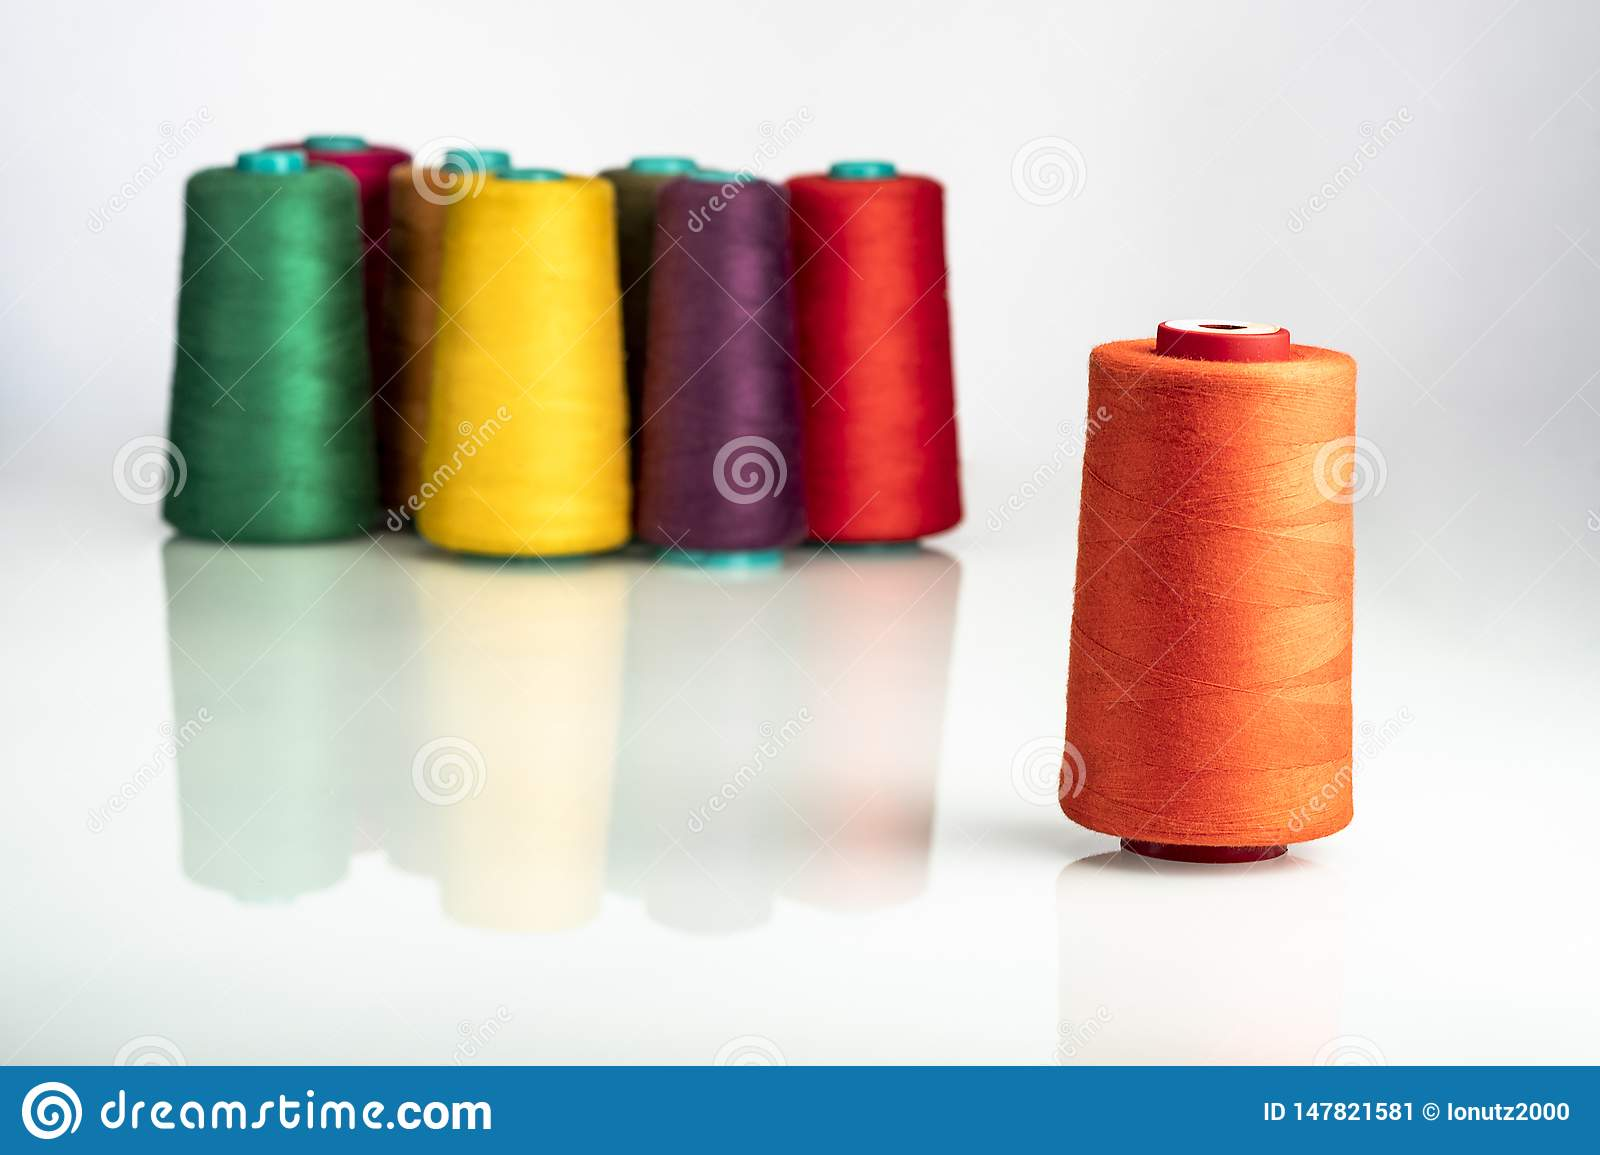 Colored industrial spools arranged on white background